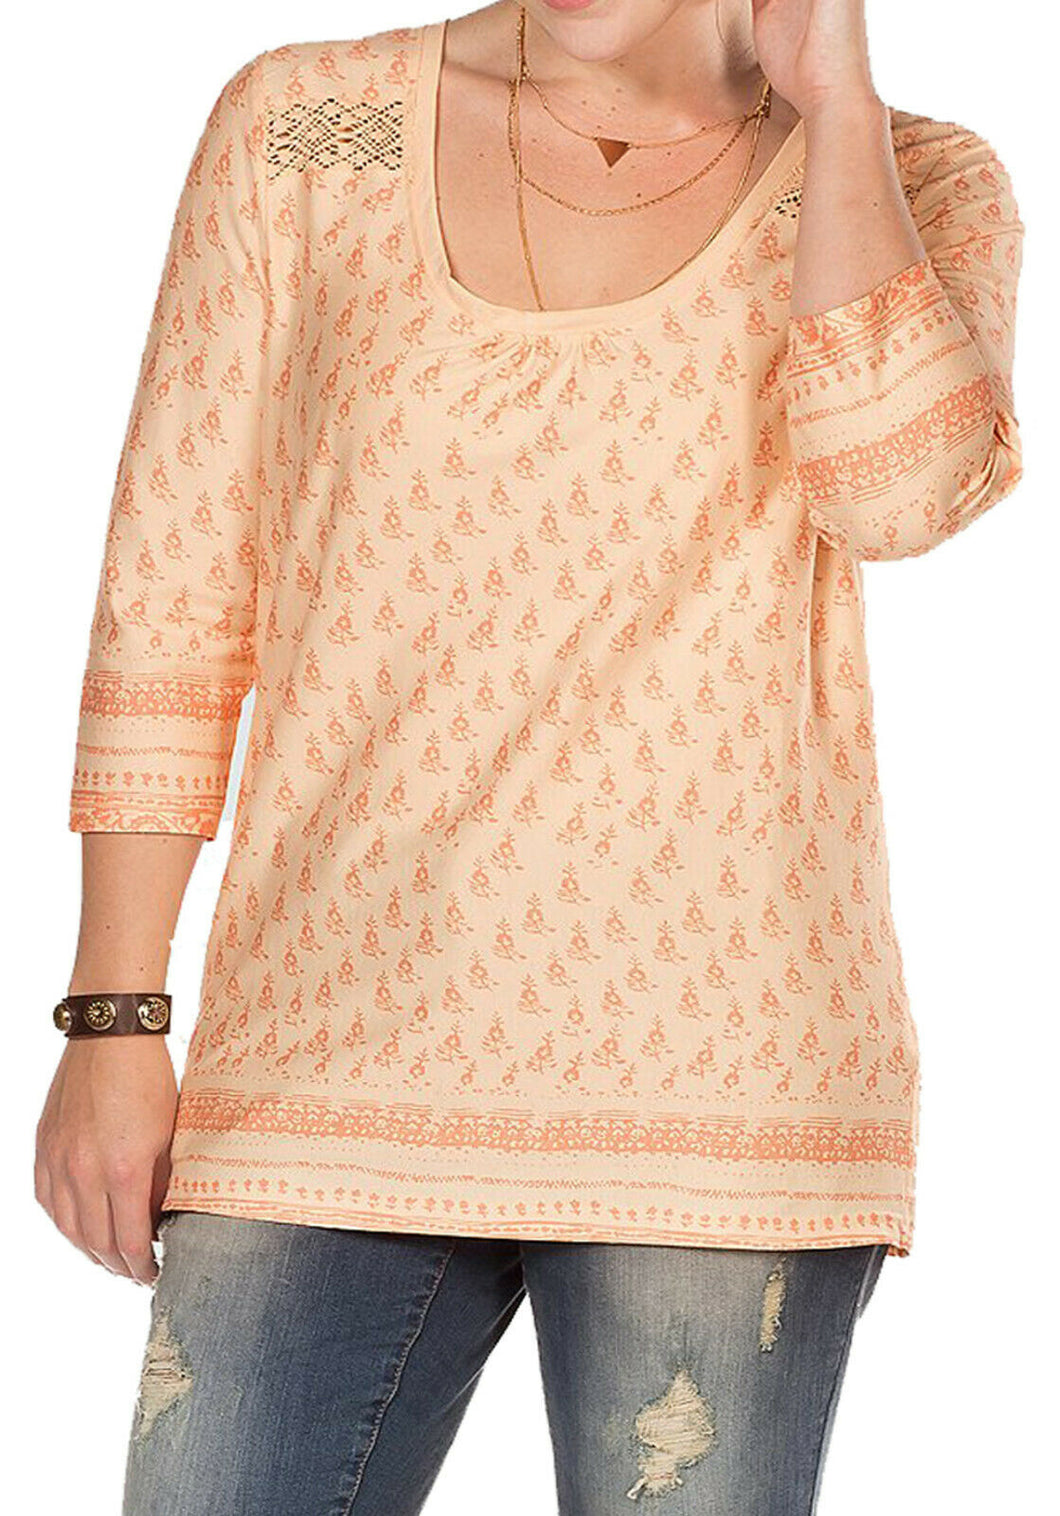 Orange Sheego Floral Lace Insert Cotton Plus Size Top